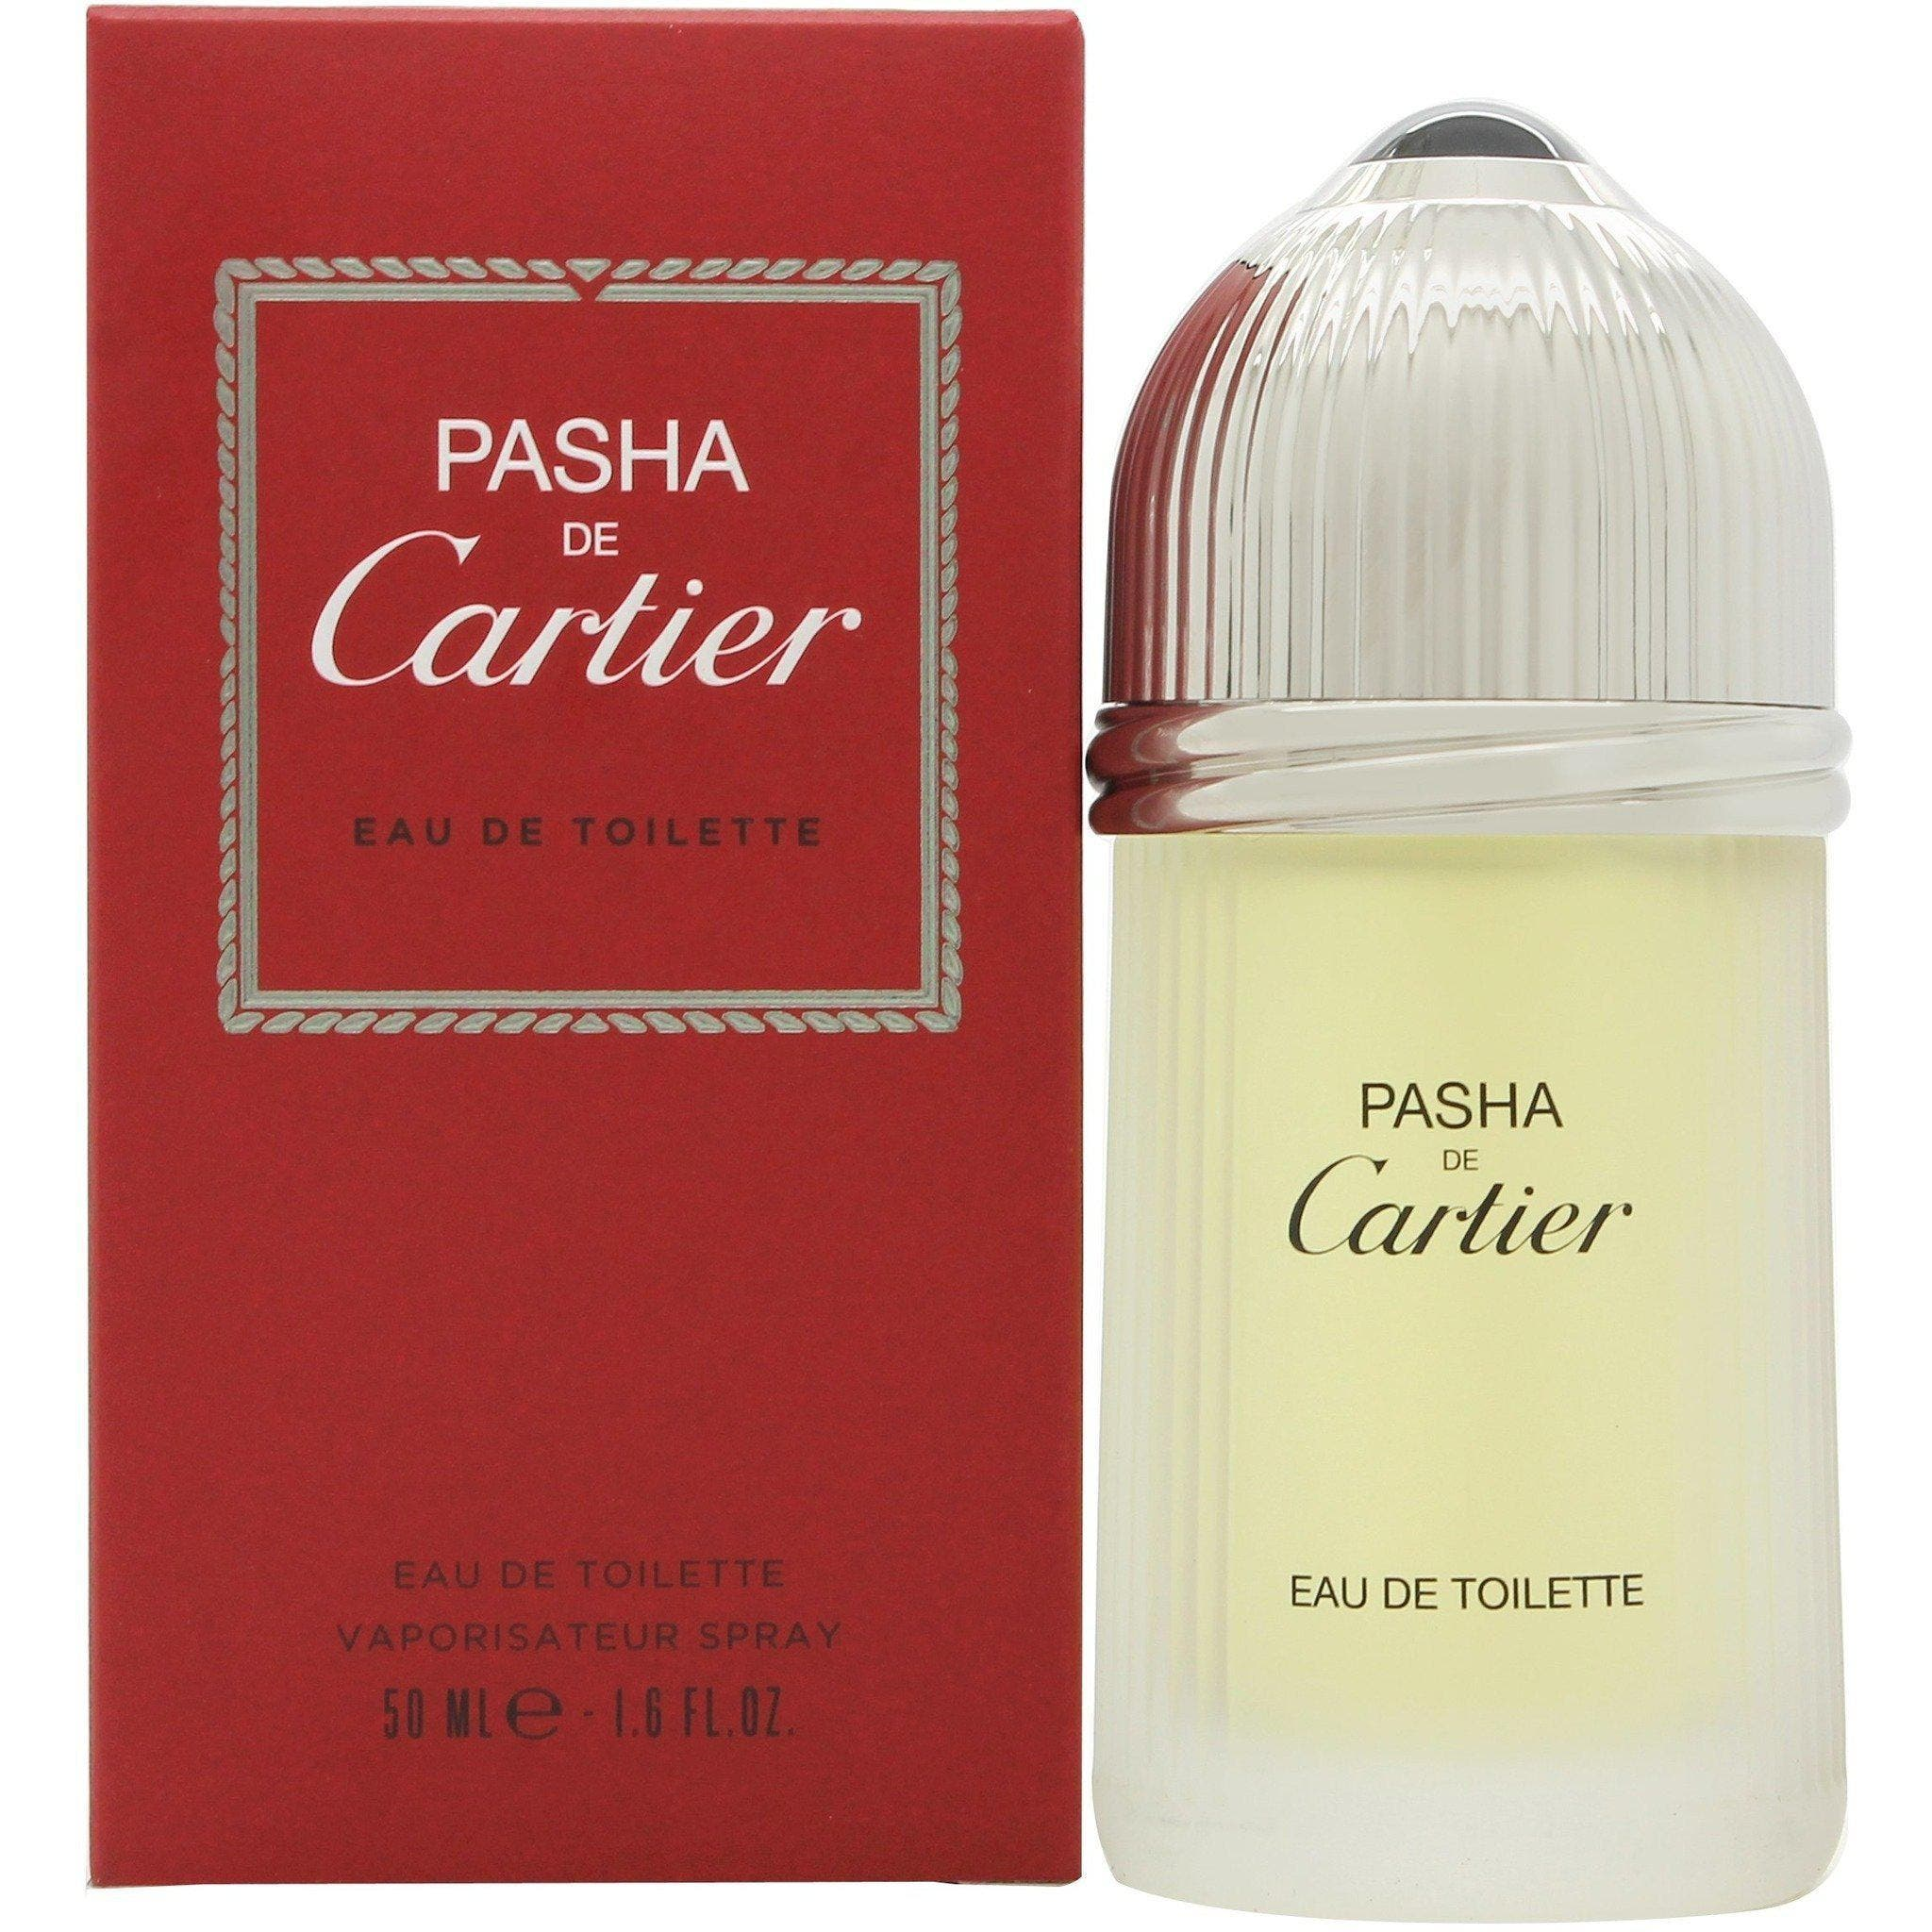 Cartier Pasha De Cartier 50ml EDT (M) SP Pasha de CartierbyCartieris a Woody Aromatic fragrance for men.Pasha de Cartierwas launched in 1992. The nose behind this fragrance isJacques Cavallier. Top notes are lavender, mandarin orange, mint, caraway and anise; middle notes are coriander and brazilian rosewood; base notes are labdanum, sandalwood, patchouli and oakmoss.